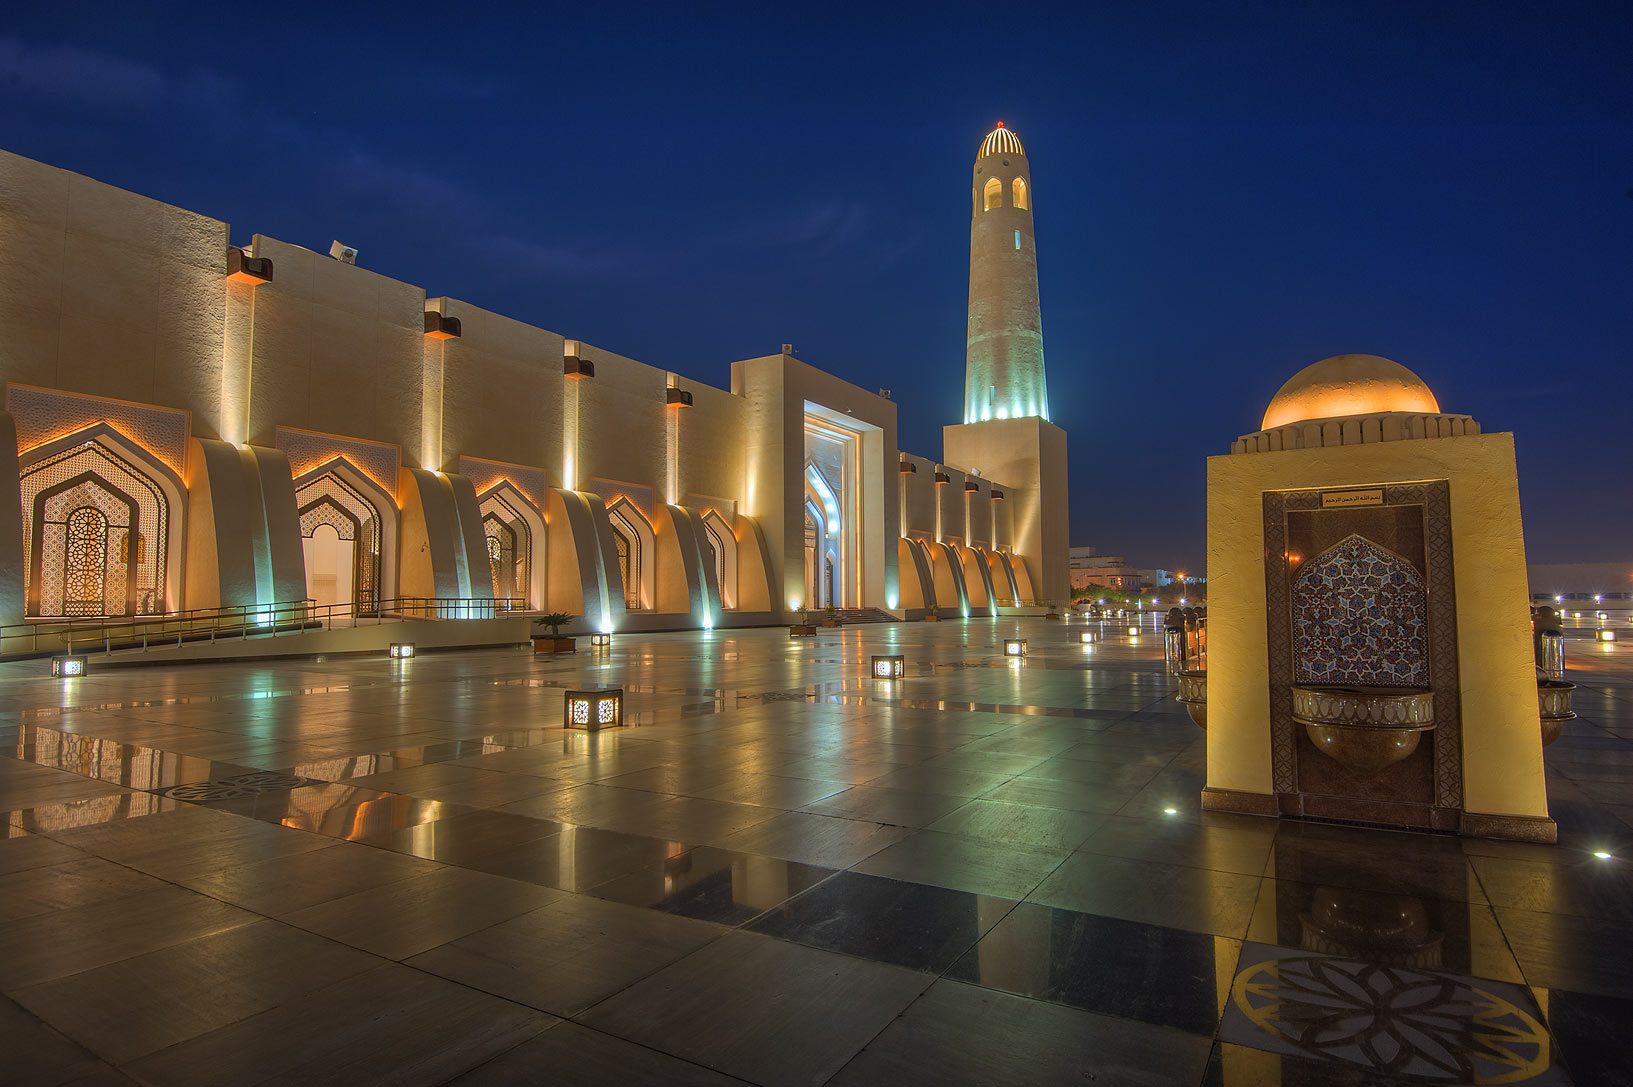 Reflections of State Mosque (Sheikh Muhammad Ibn Abdul Wahhab Mosque). Doha, Qatar